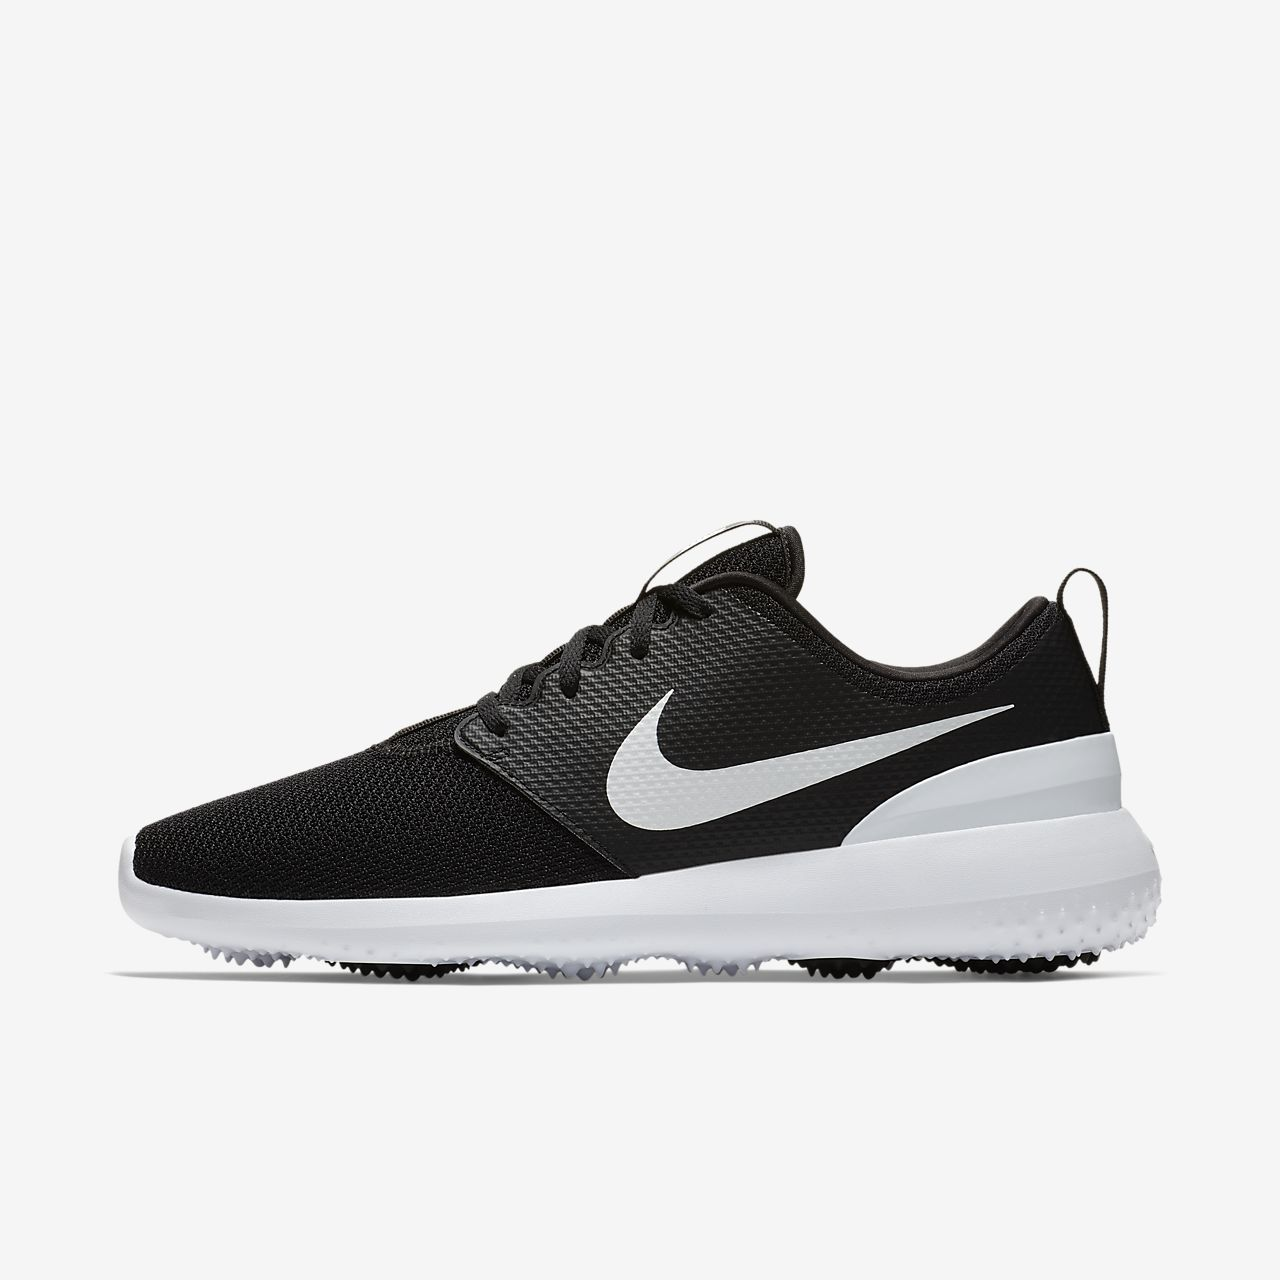 7386fc9a5b3 Nike Roshe G Men s Golf Shoe. Nike.com